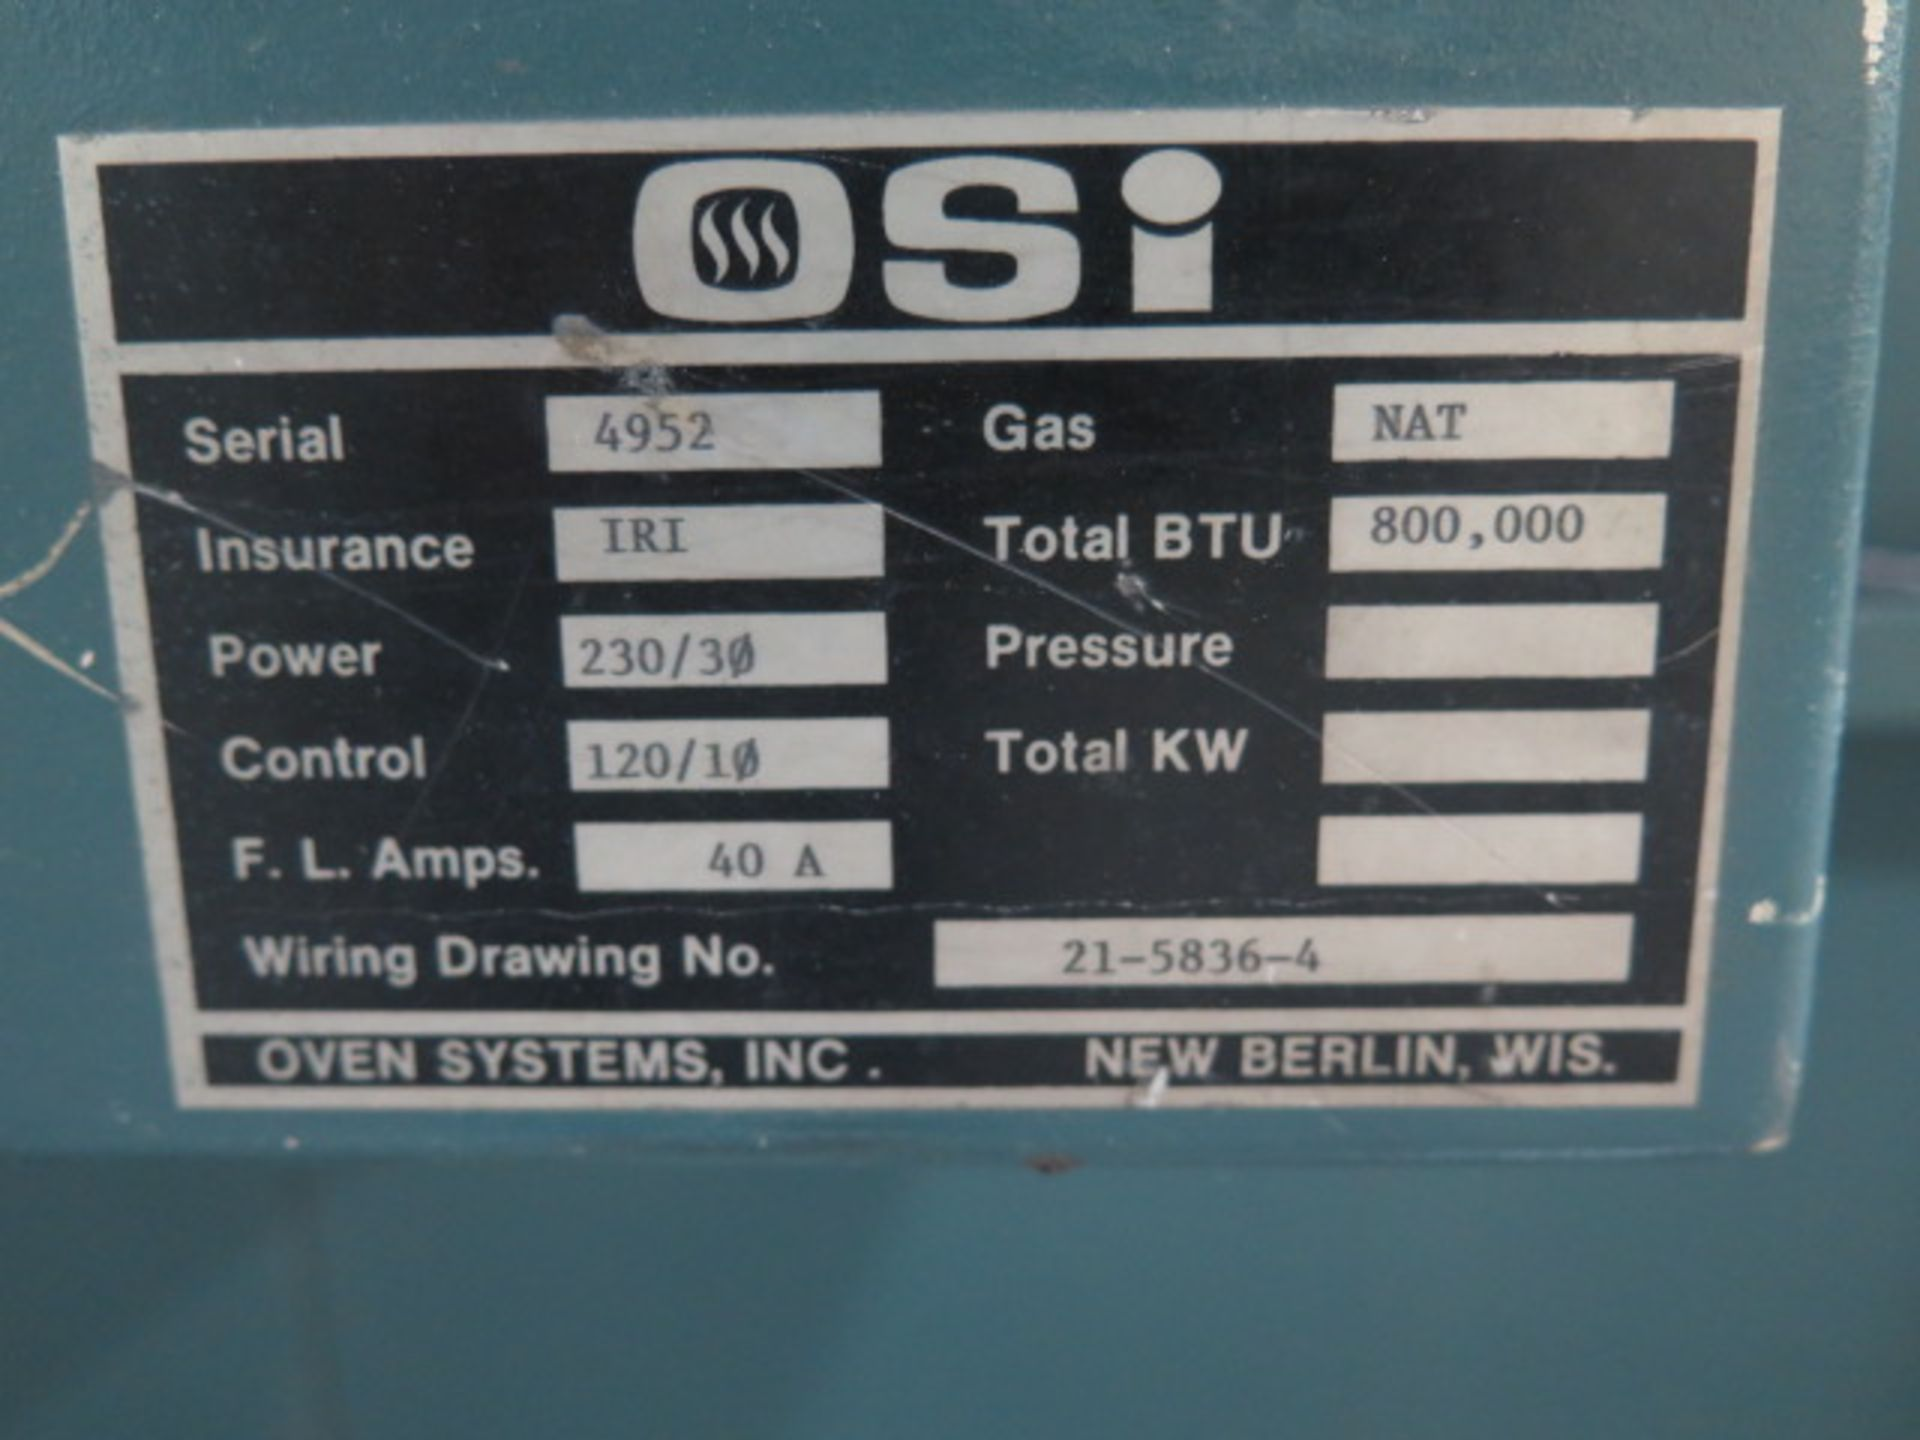 Lot 142 - OSI Oven Systems Inc. 800,000 BTU Natural Gas Fired Oven s/n 4952 w/ 10 ½' x 13' Outside Dims, Digit